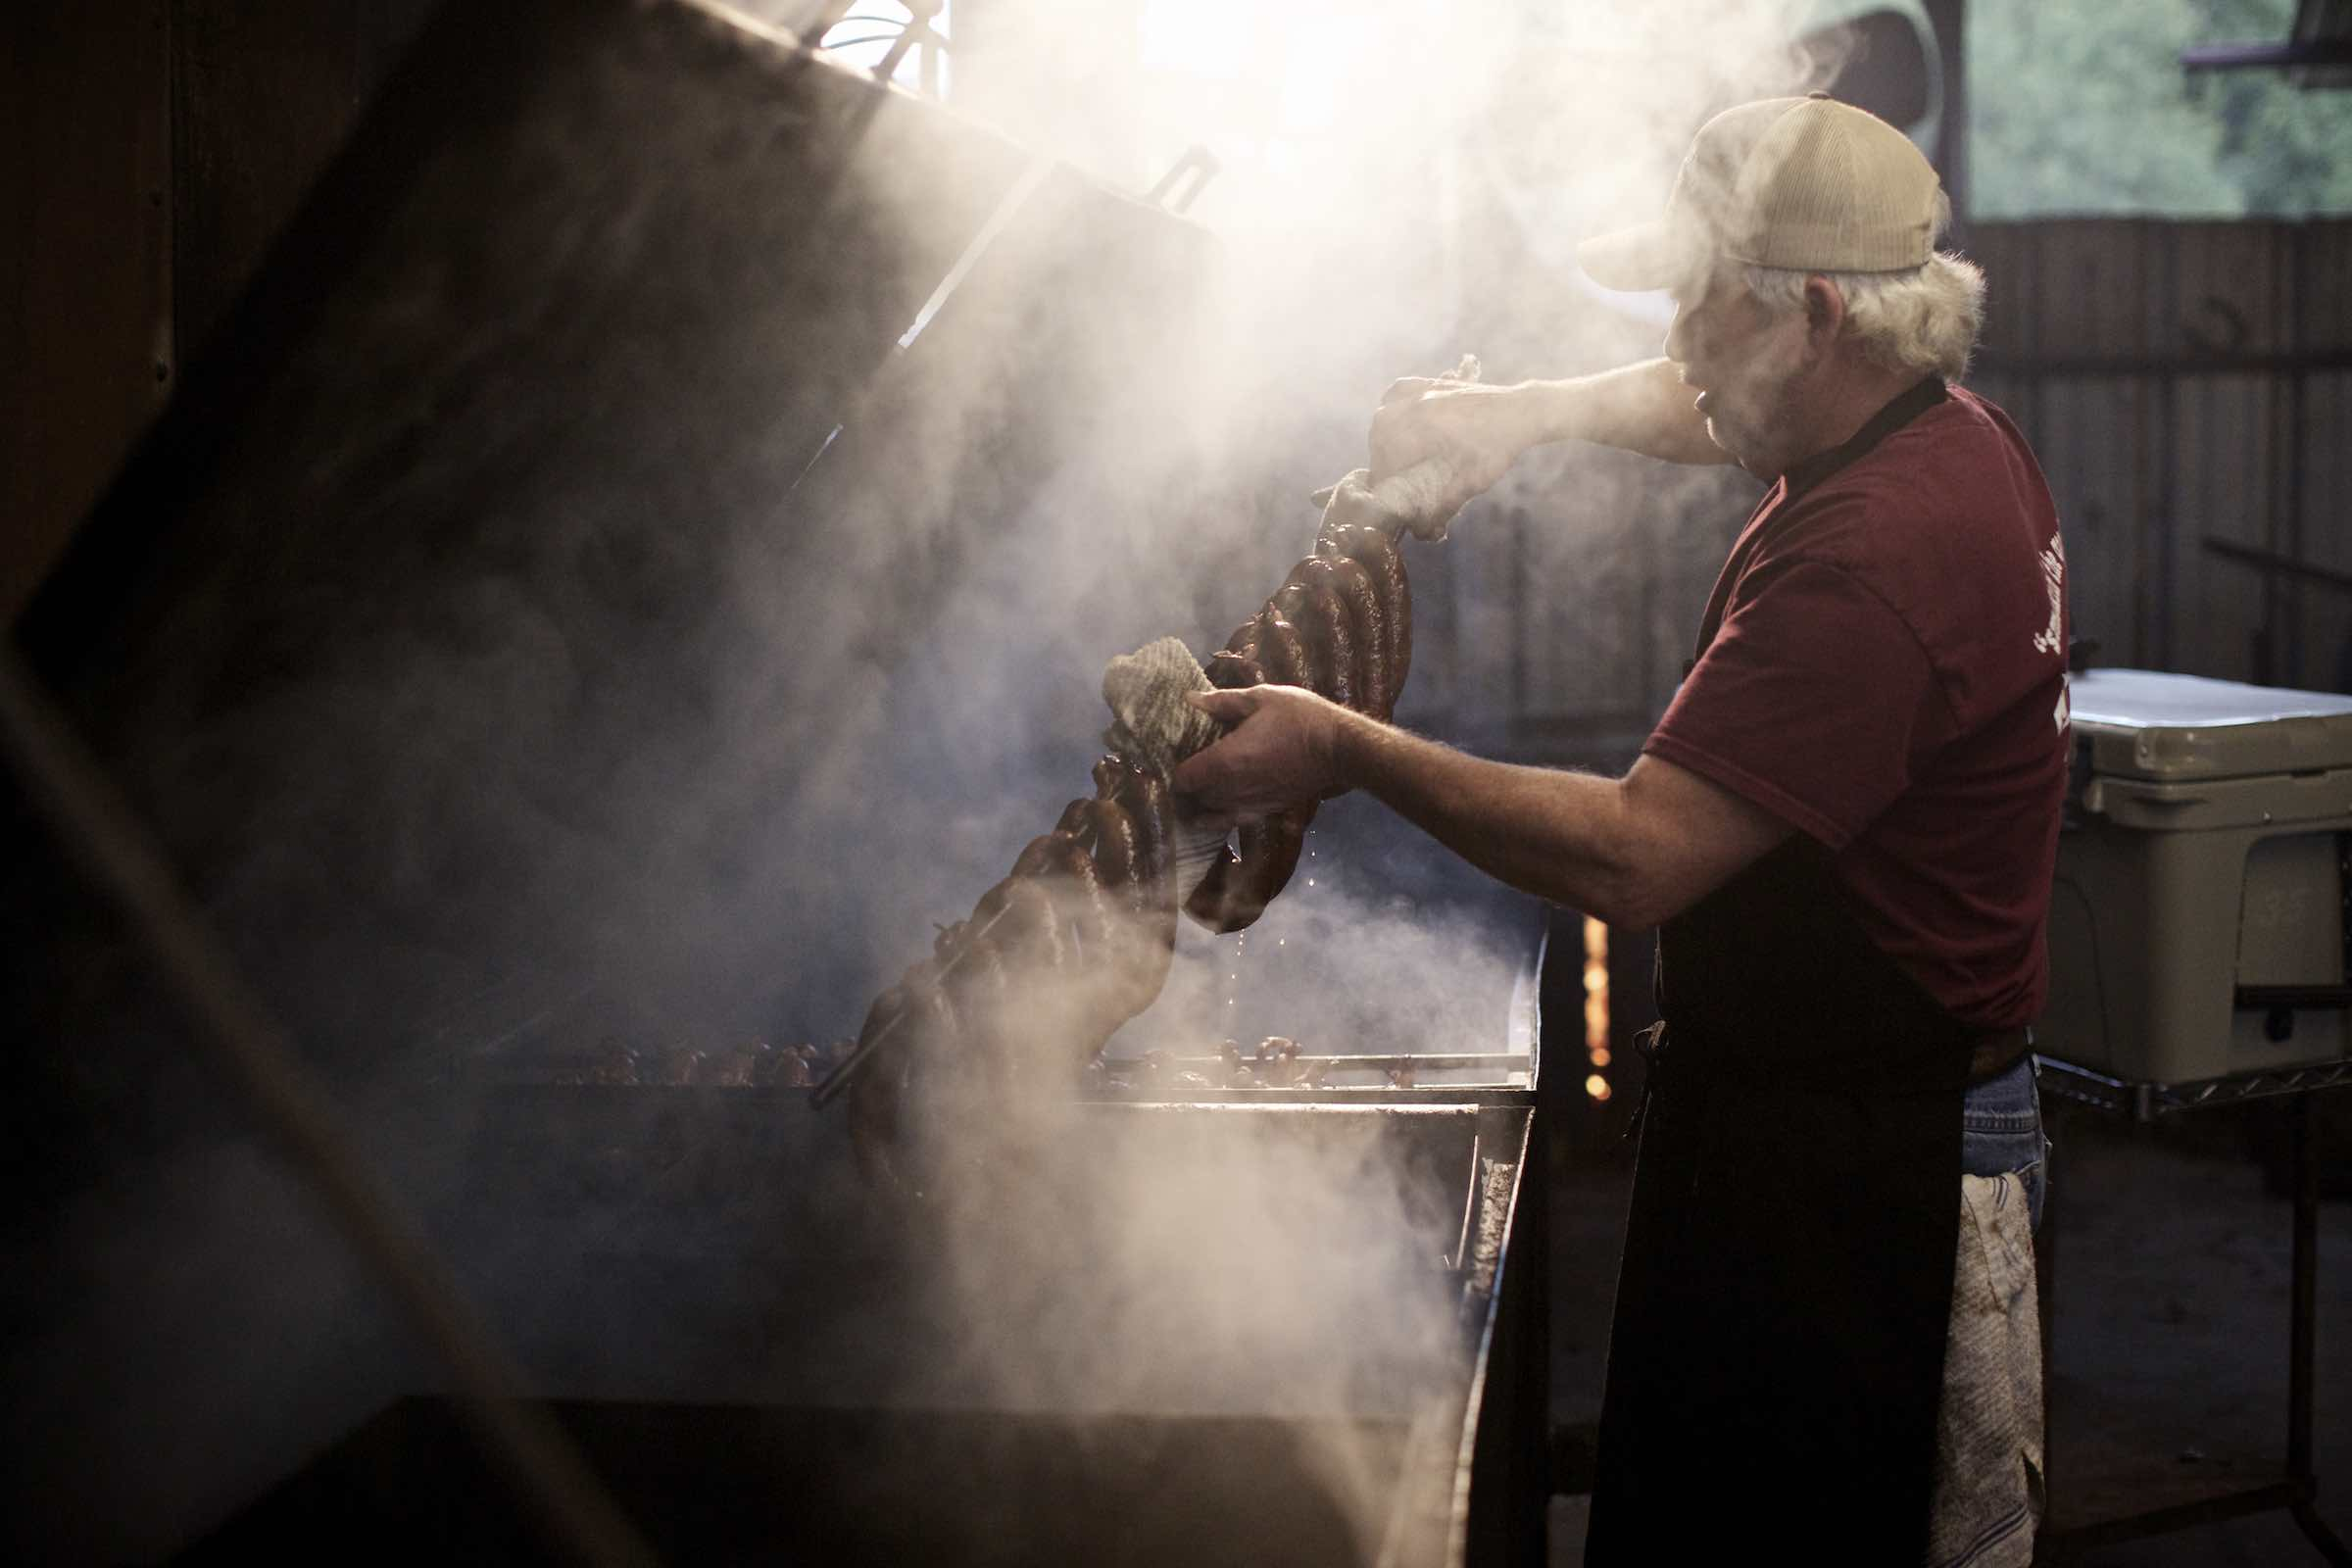 Pit master removing smoked sausages from smoker.